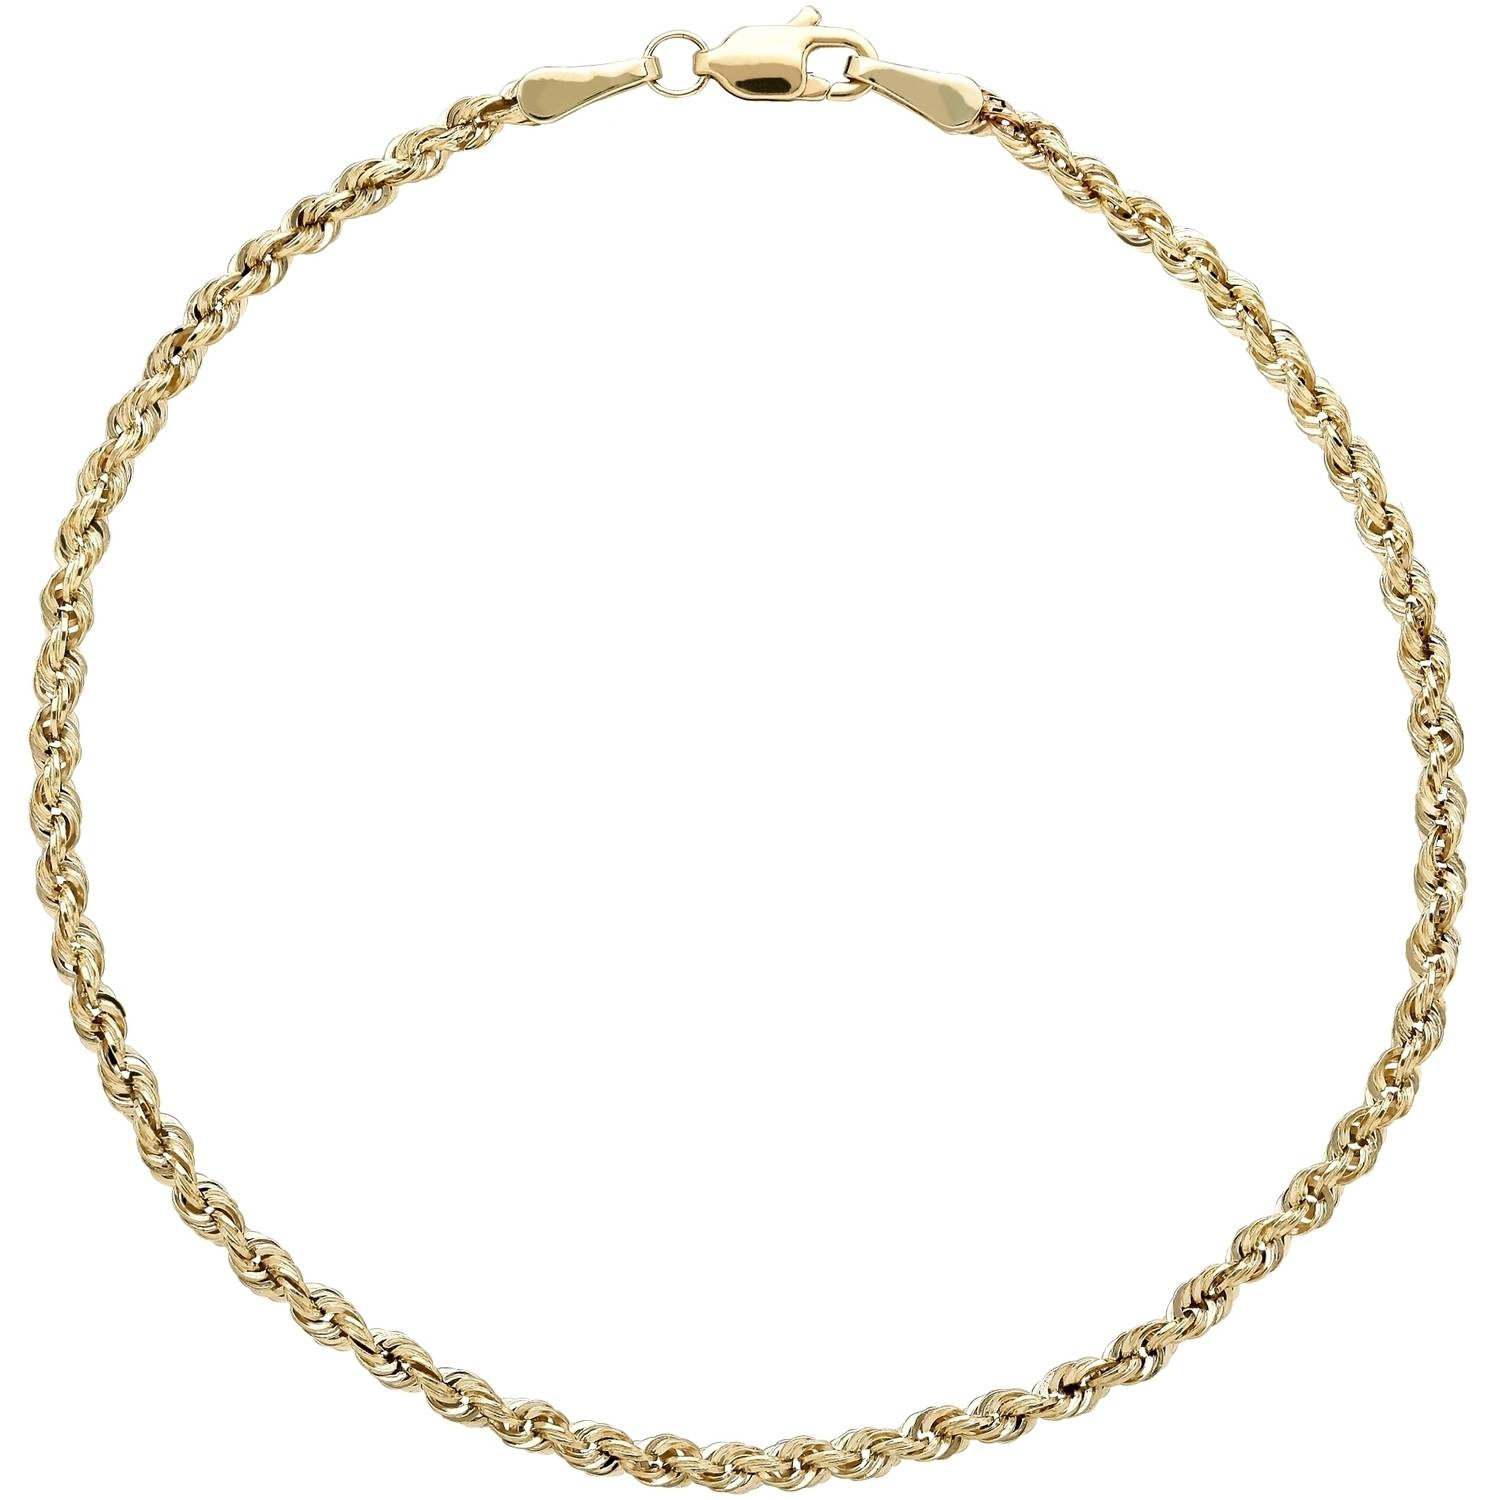 Simply Gold 10kt Yellow Gold 2.5mm Glitter Rope Bracelet